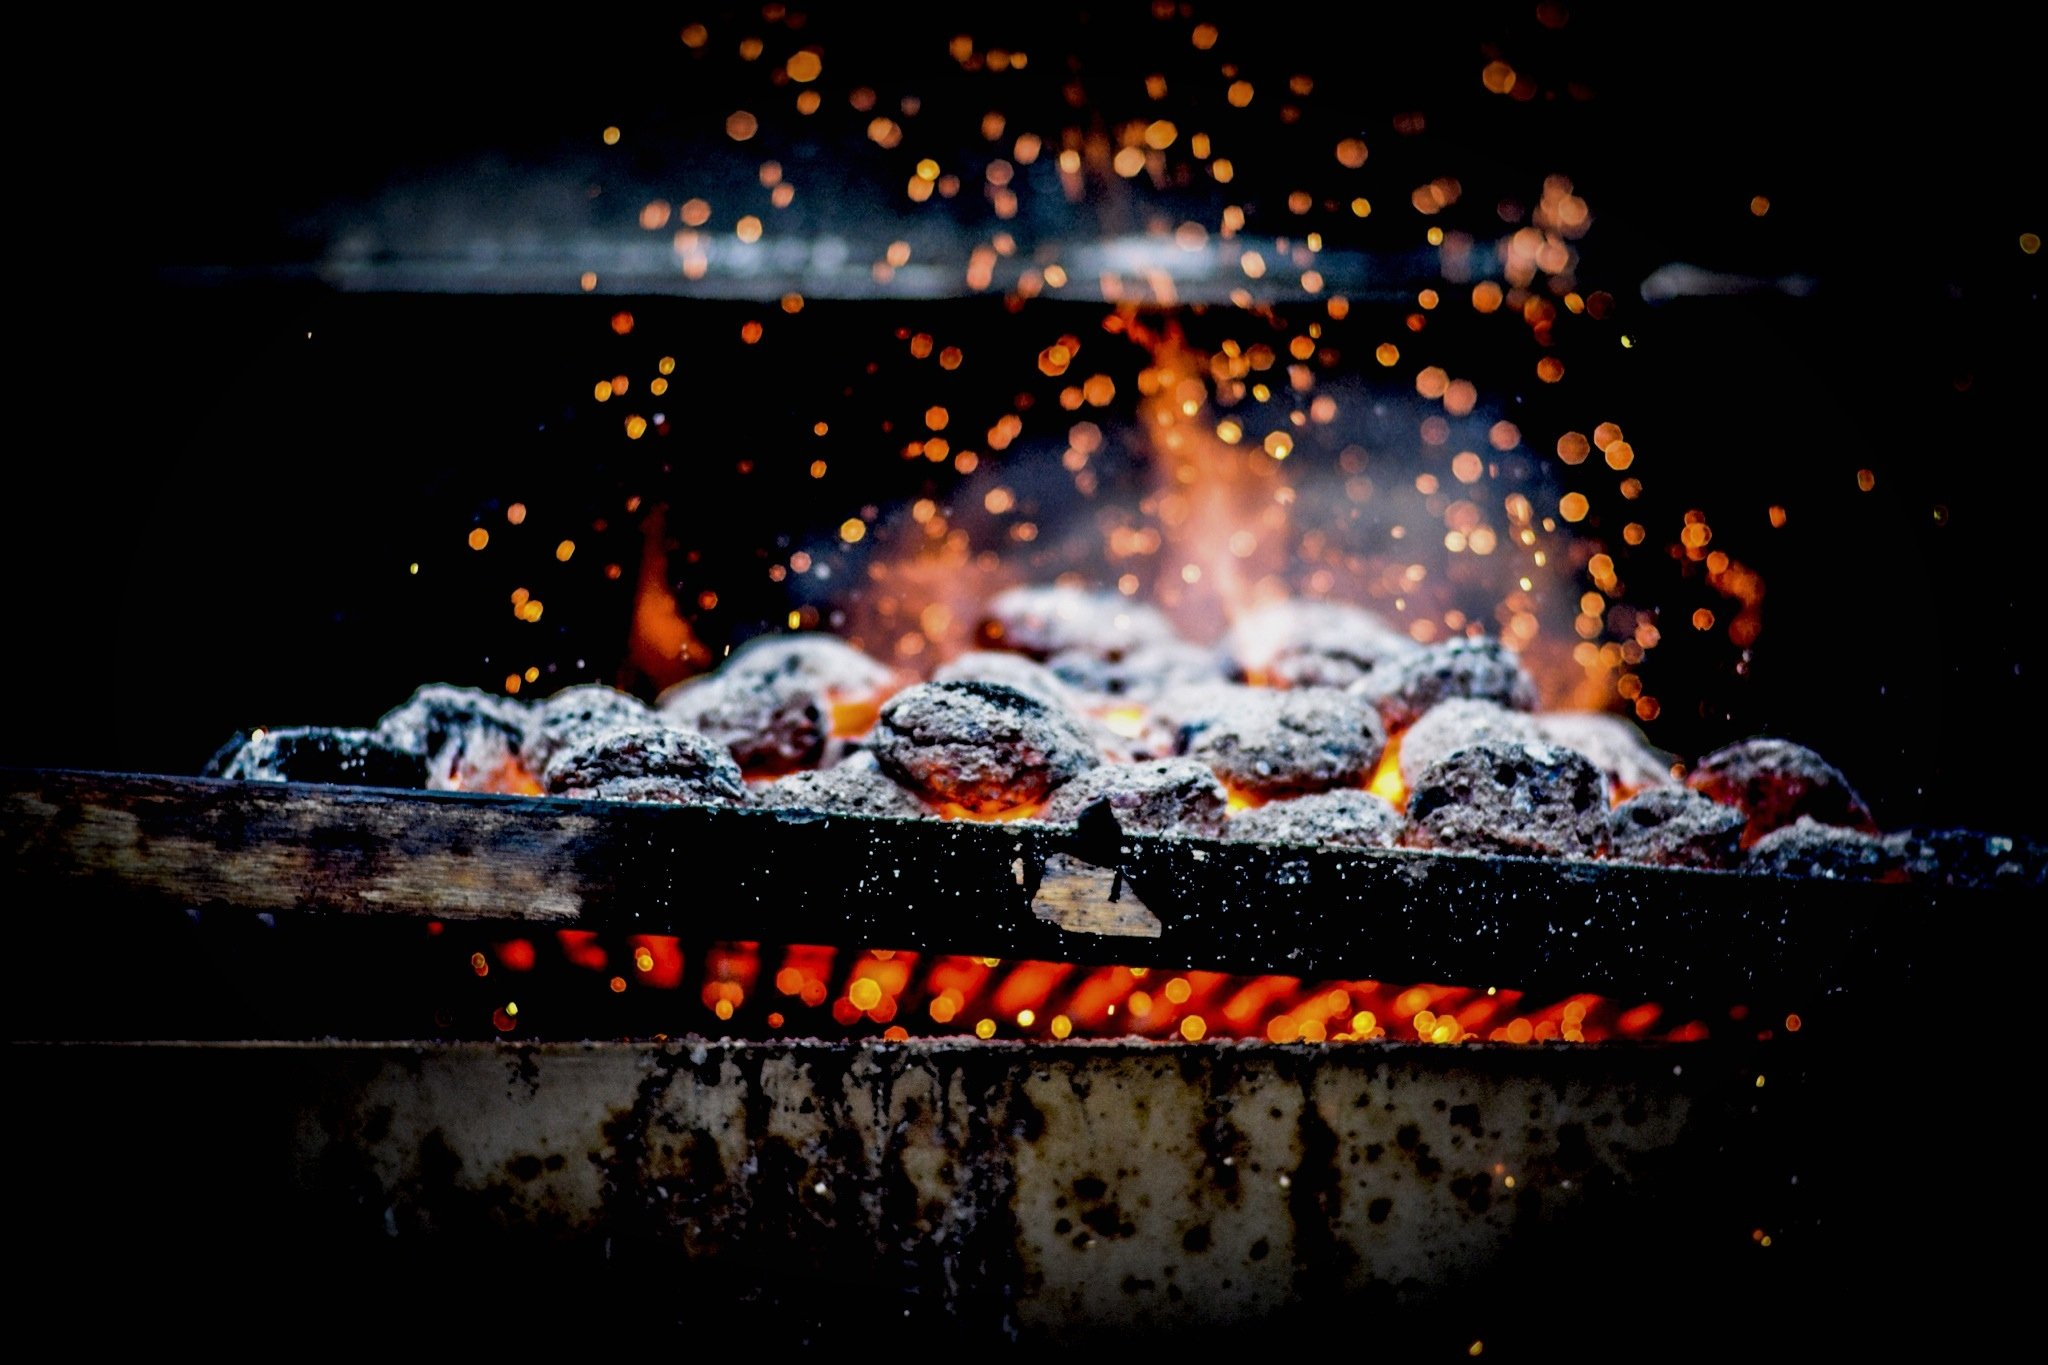 roasted charcoal